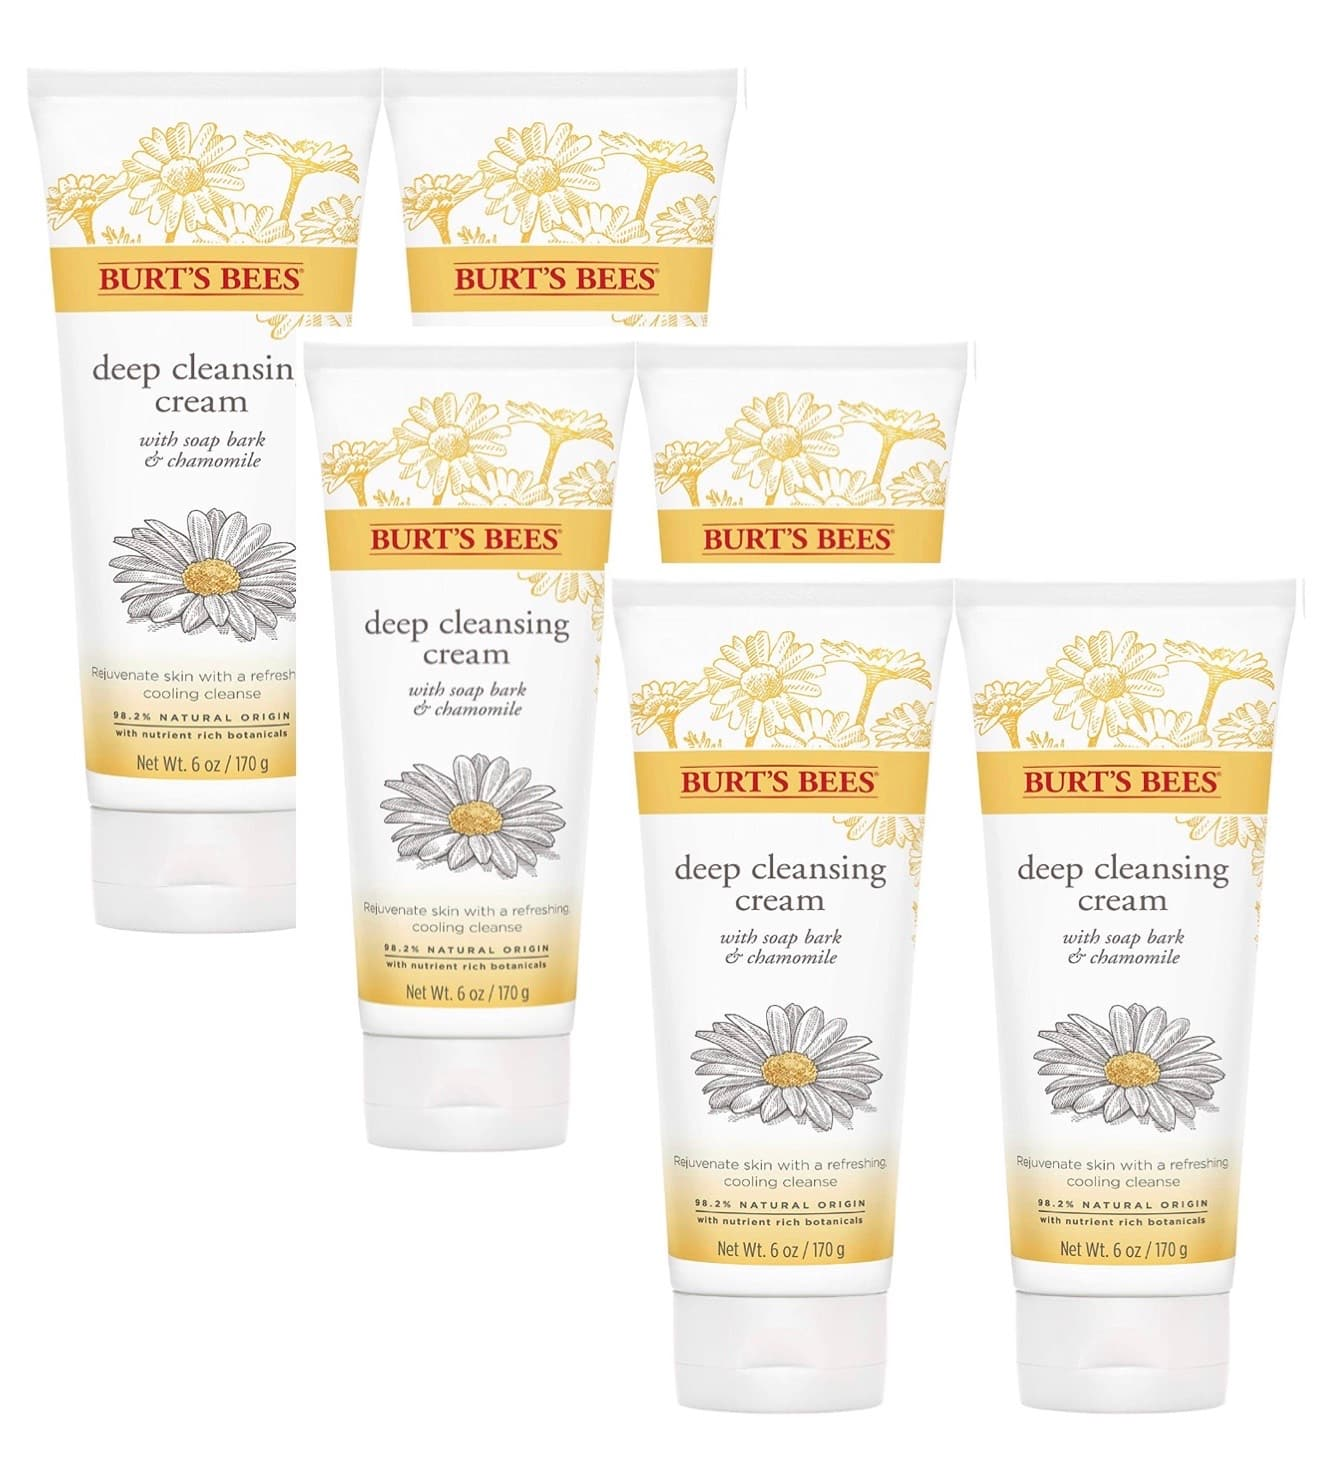 6-Ounce Burt's Bees Soap Bark and Chamomile Deep Cleansing Cream 6 for $24.75 ($4.13 each) + Free Shipping w/ Prime or on orders $25+